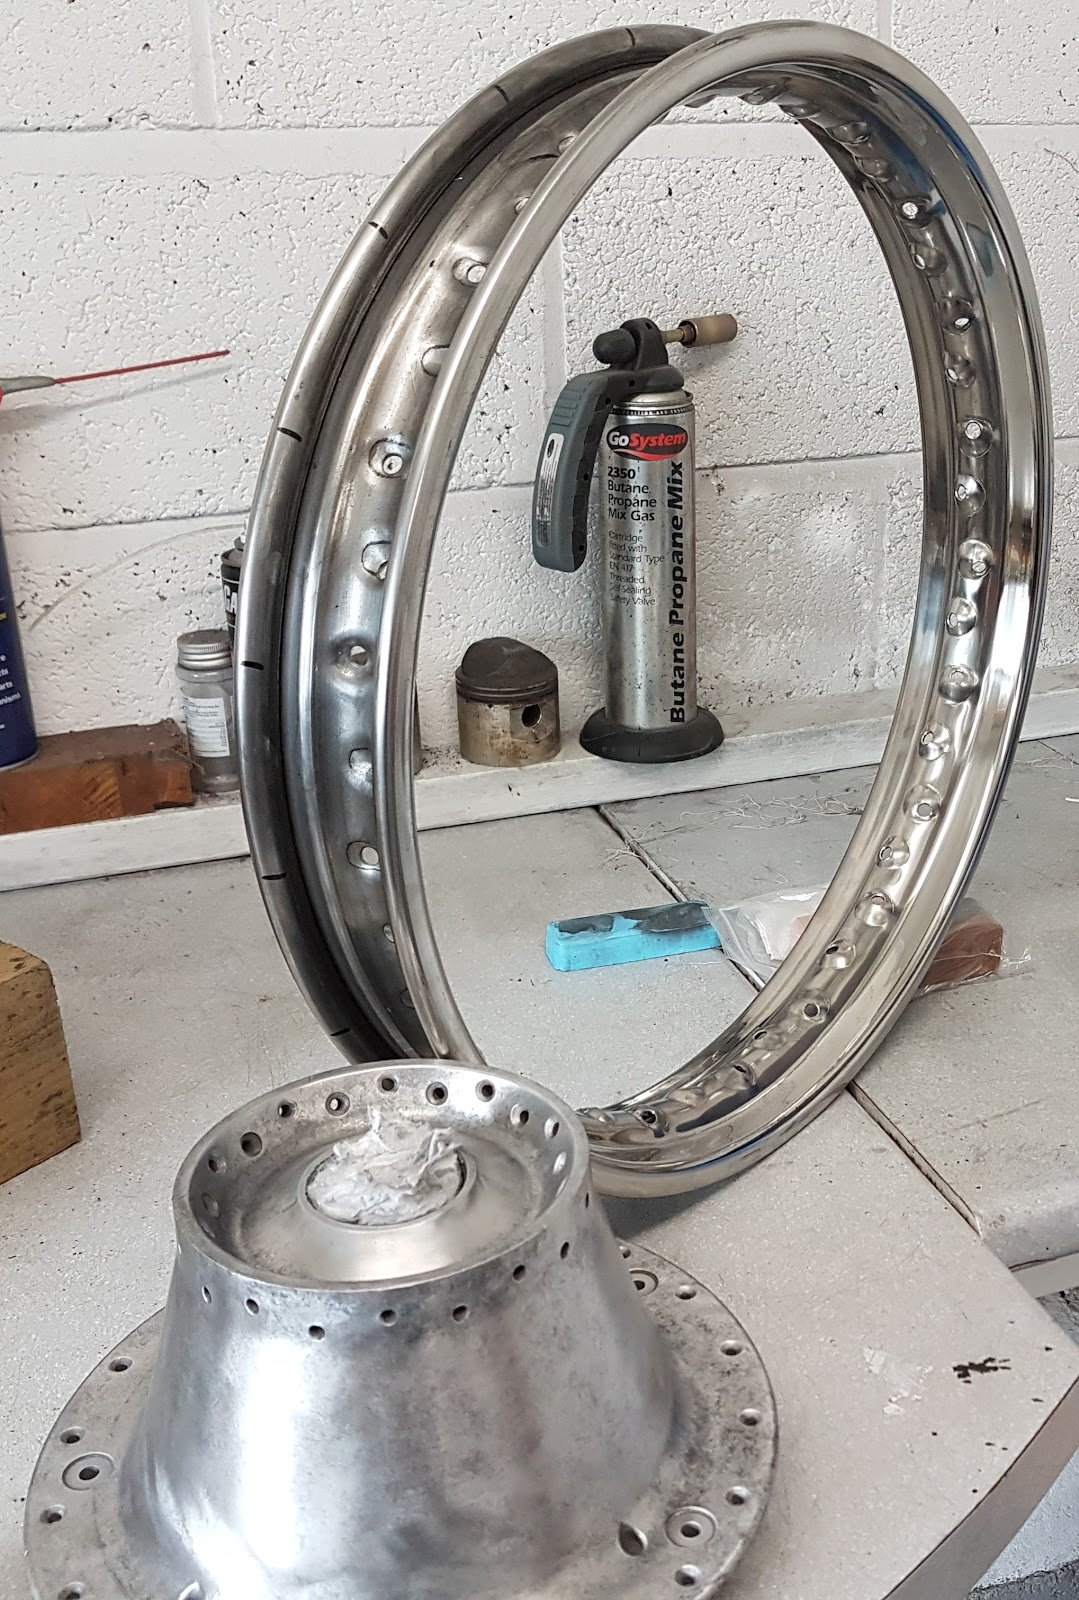 Triumph Bonneville Wheel hub and rim ready for assembly.